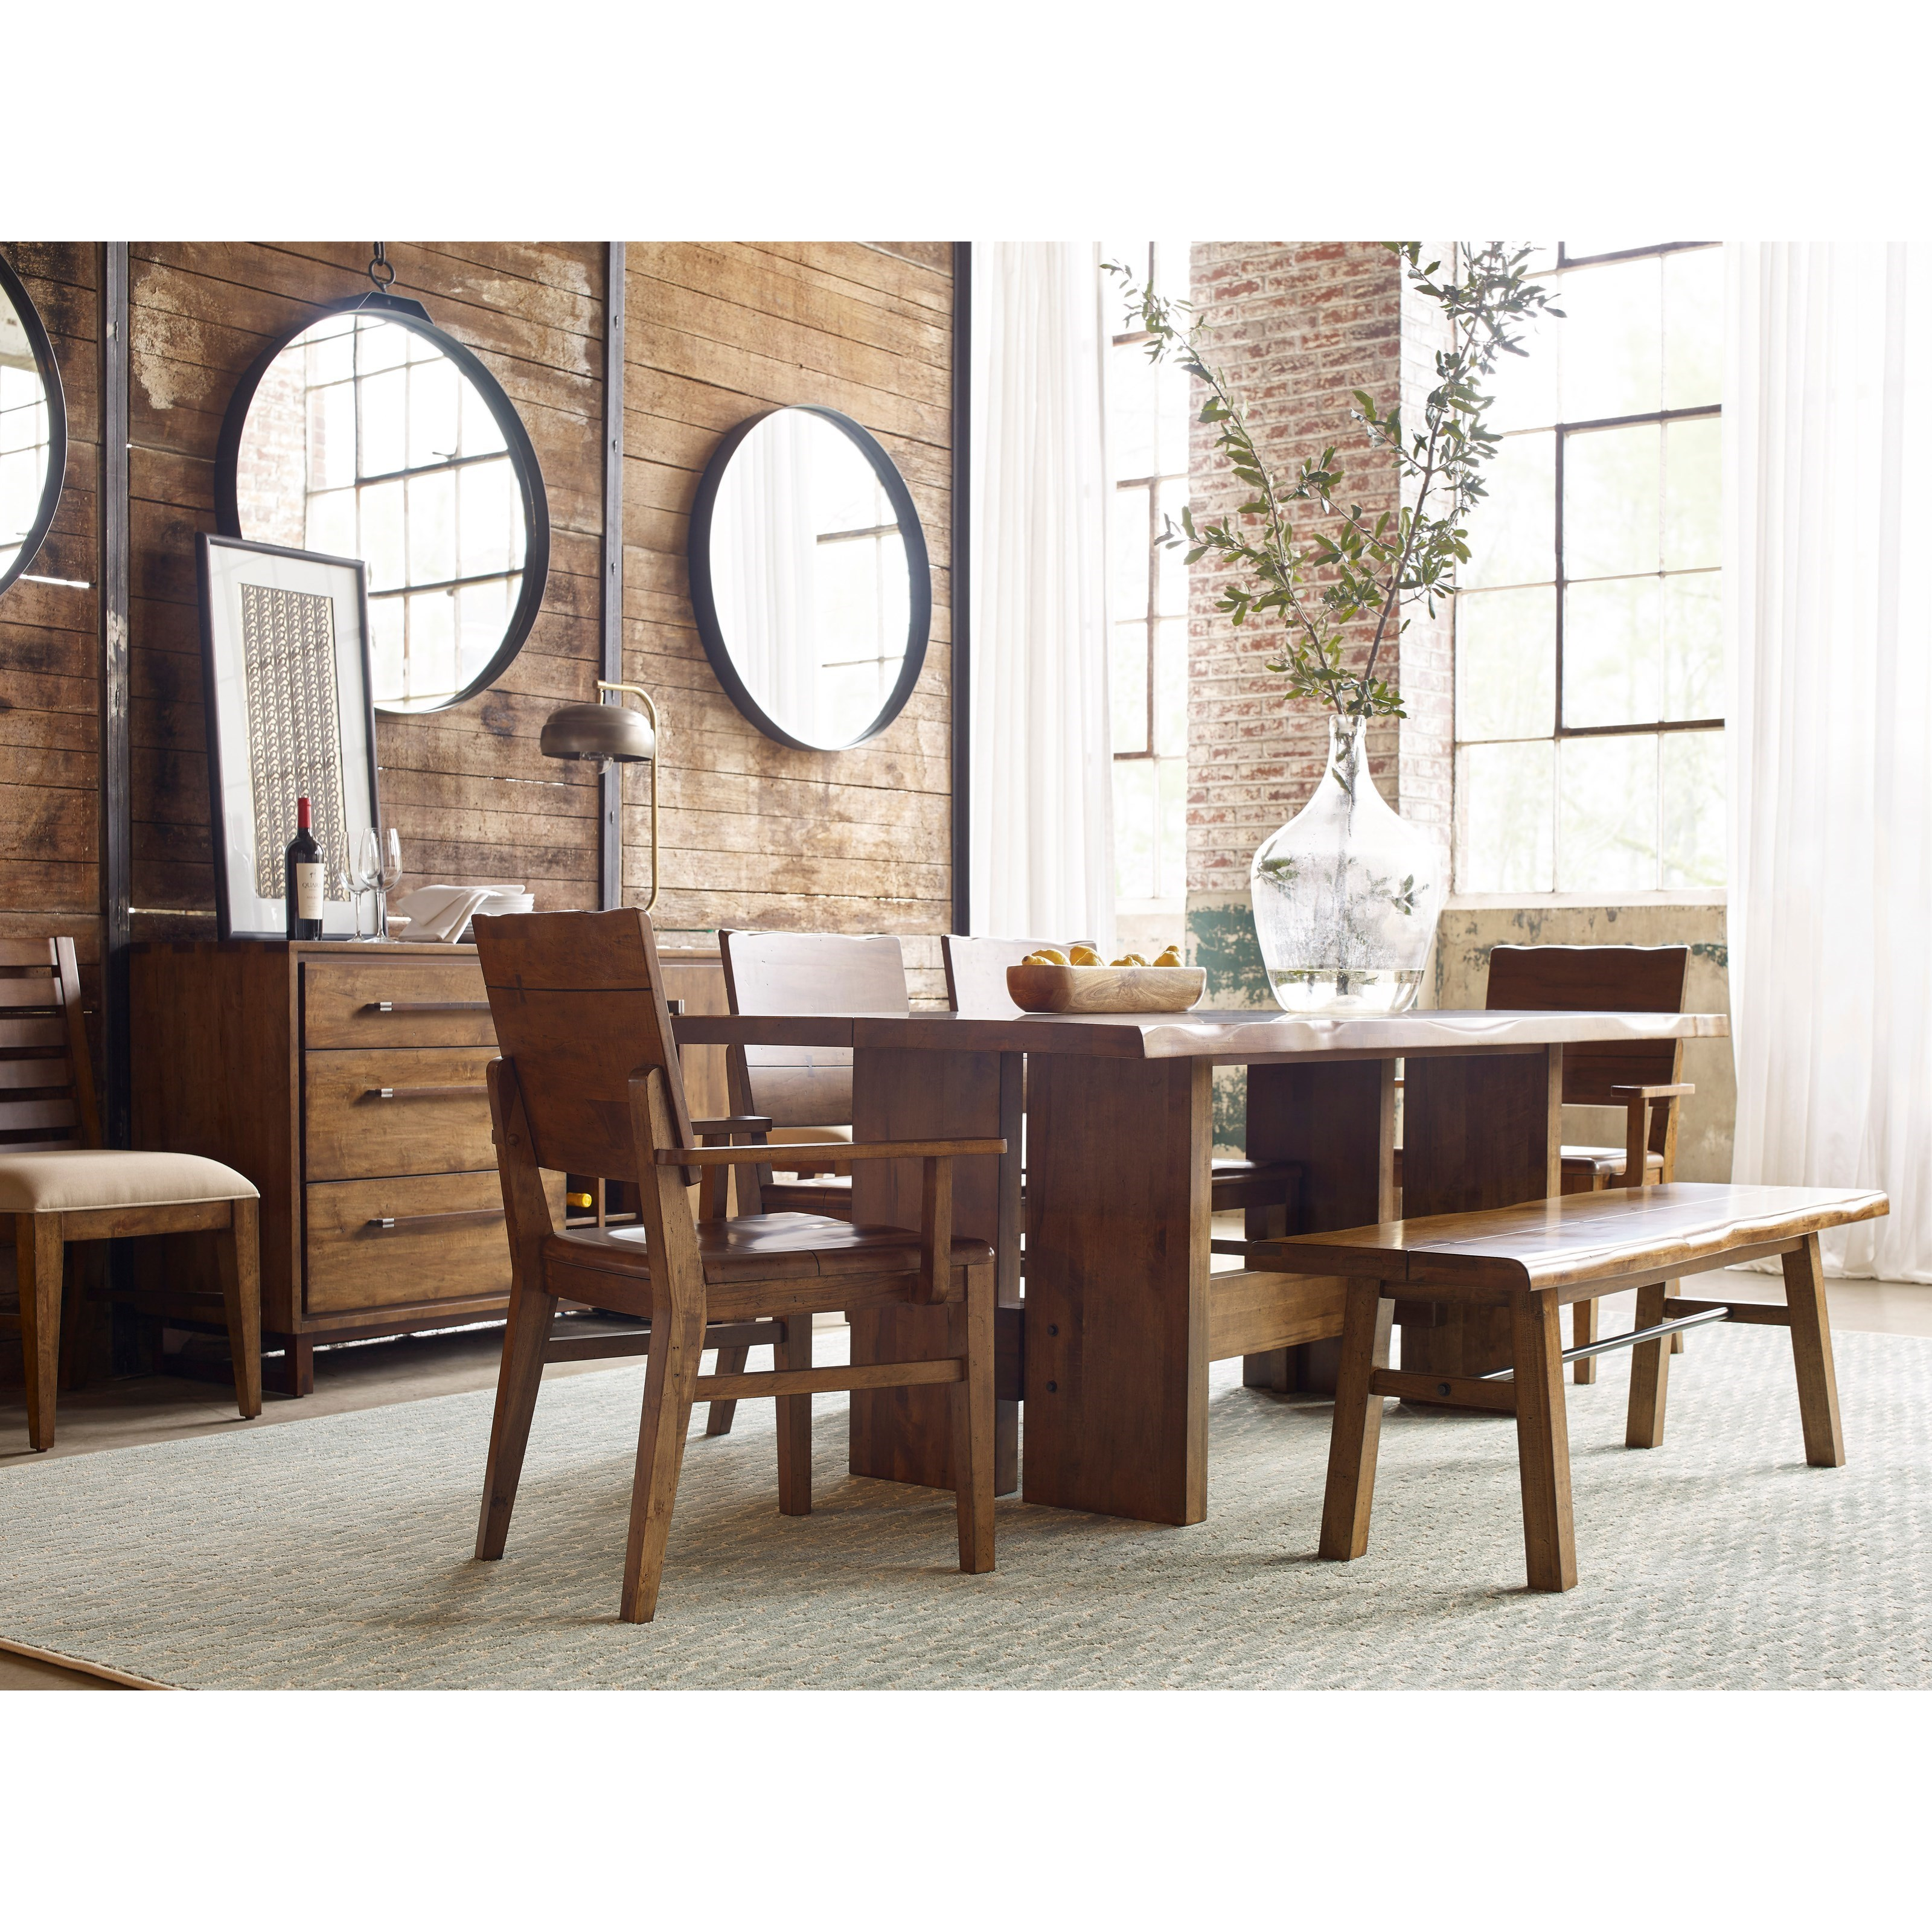 Cutler Live Edge Trestle Dining Table by Kincaid Furniture Wolf